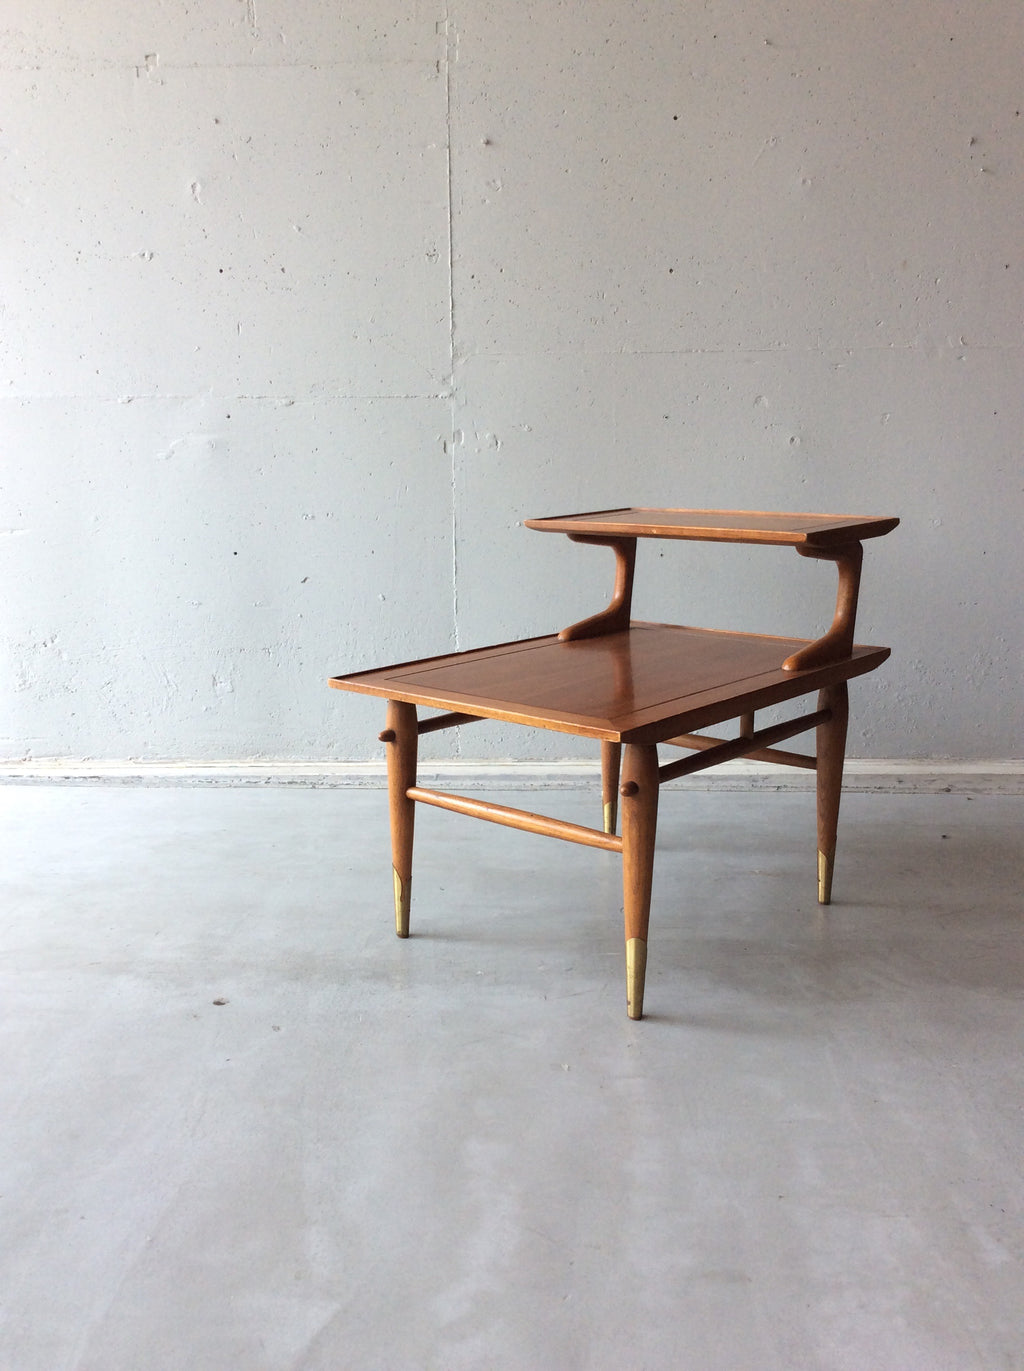 レーン コペンハーゲン サイドテーブル / lane altavista copenhagen side step end table with brass legs #0106